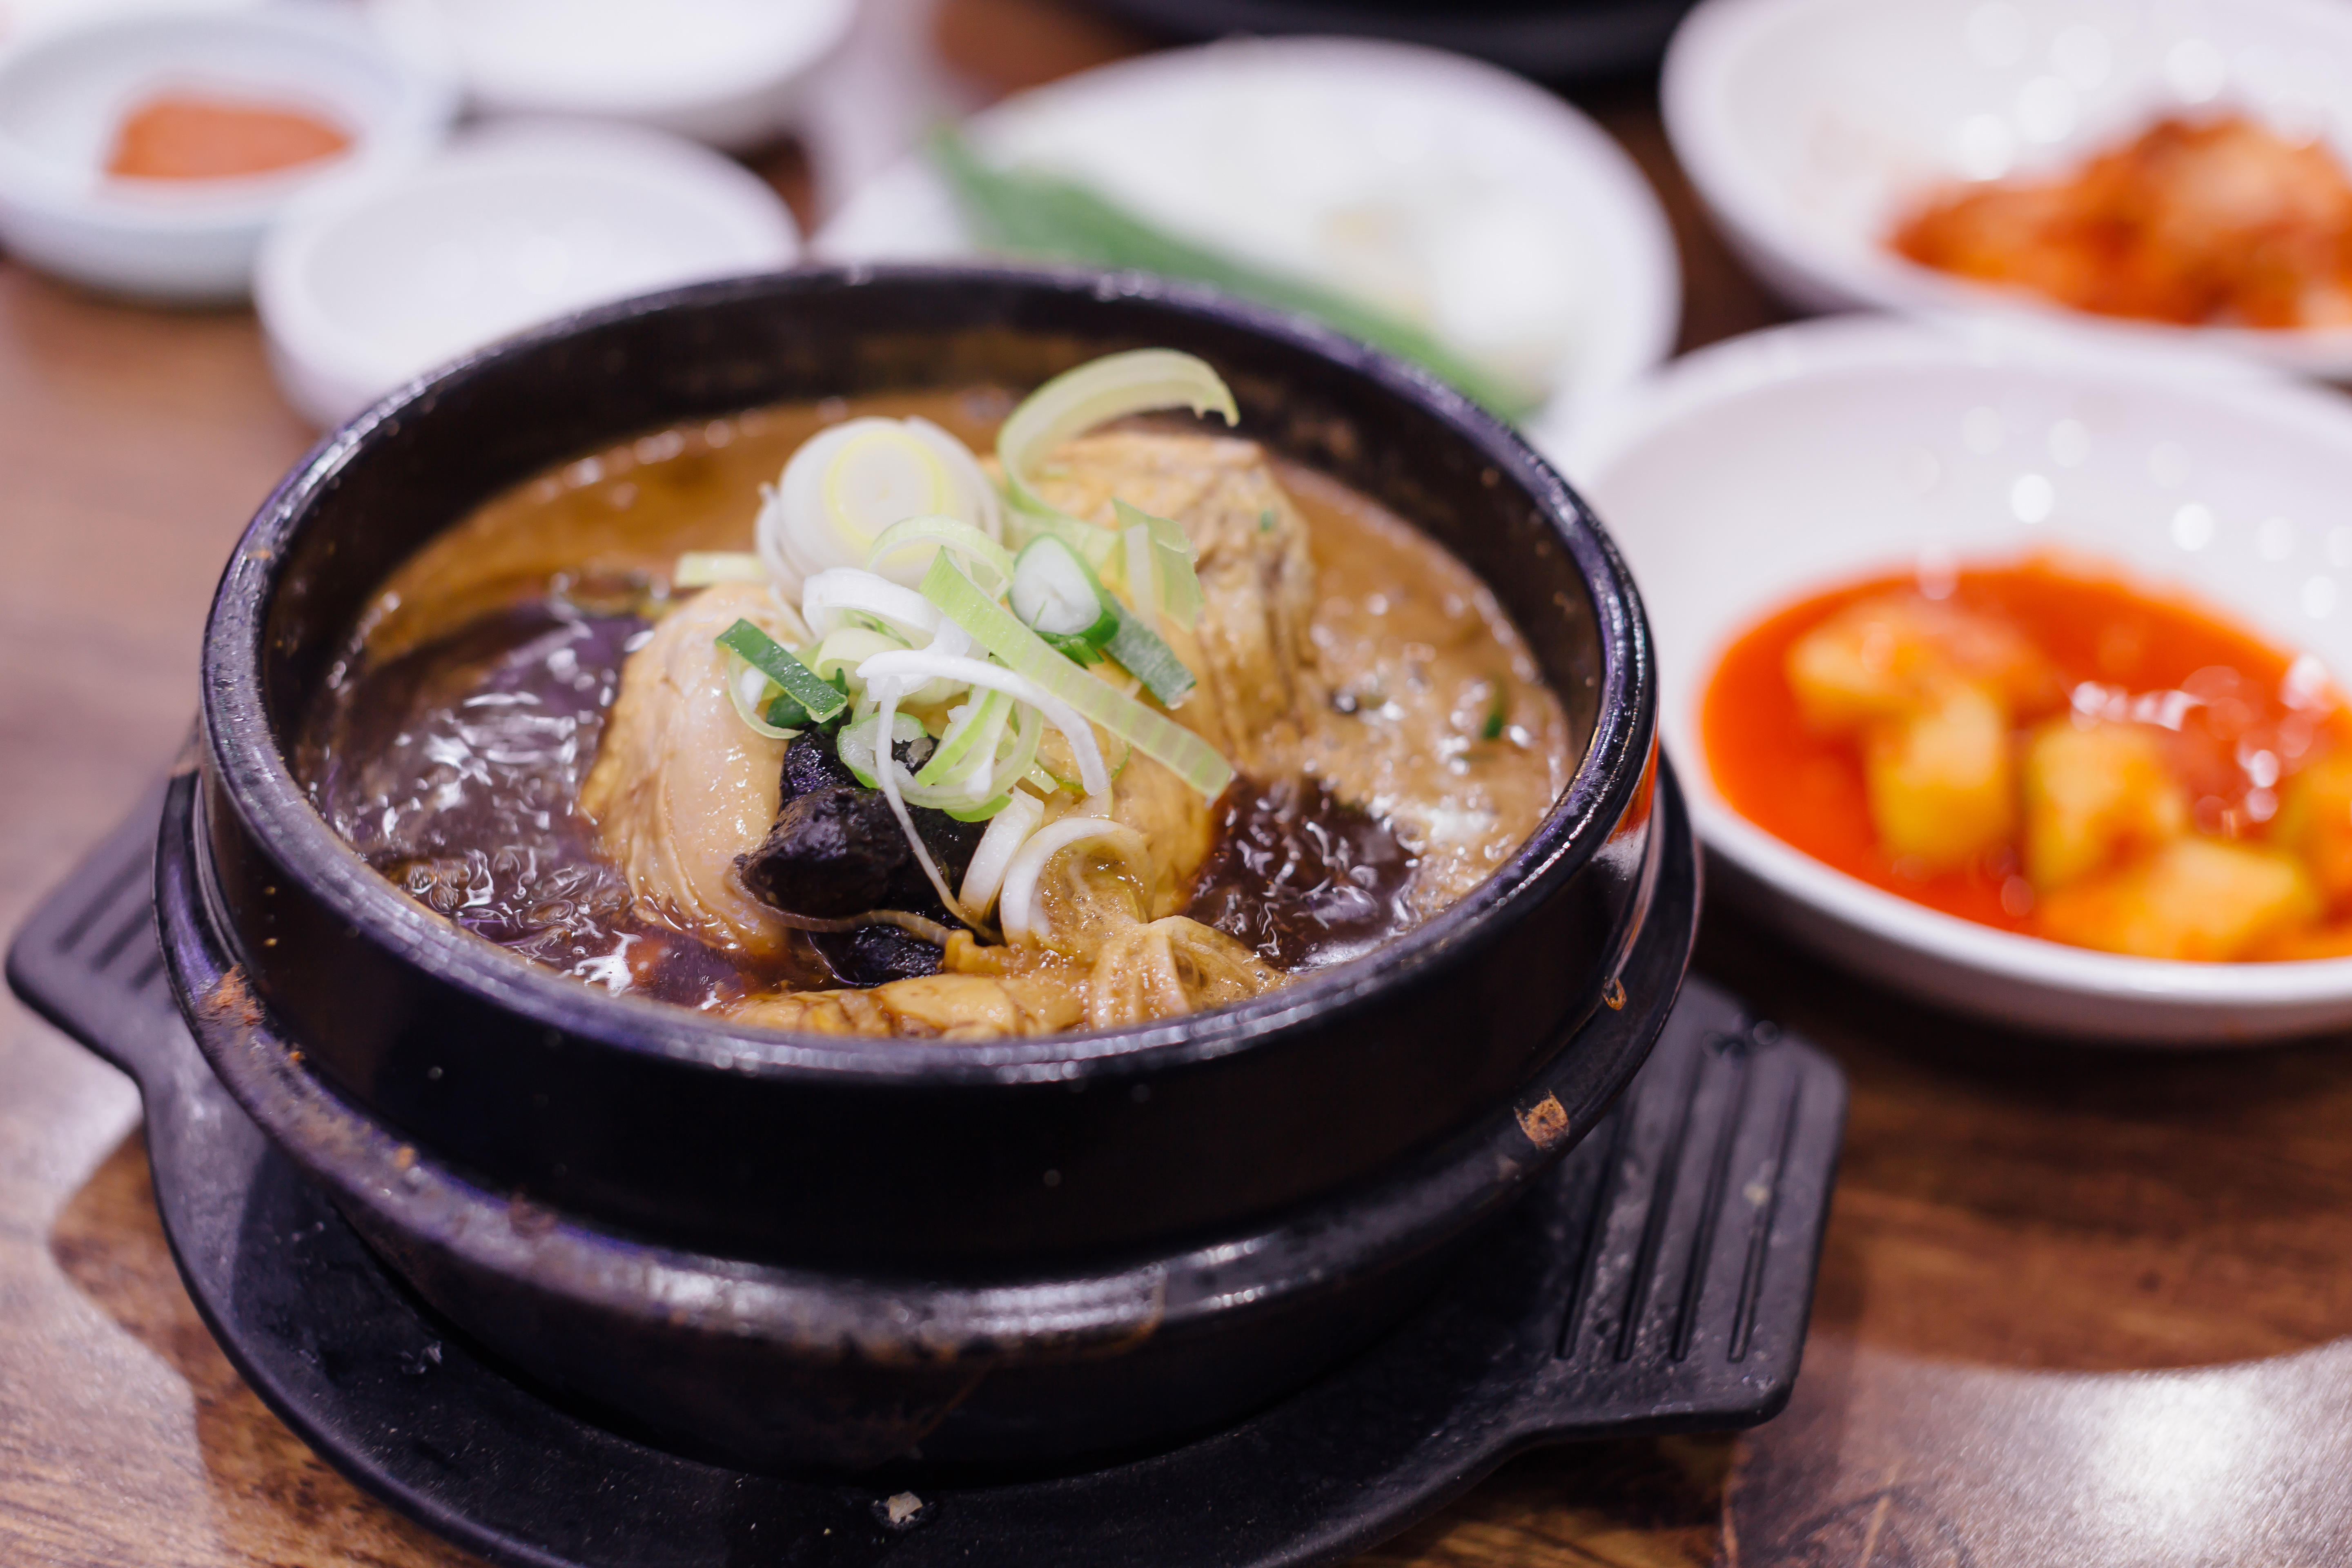 The Top 14 South Korean Foods To Try